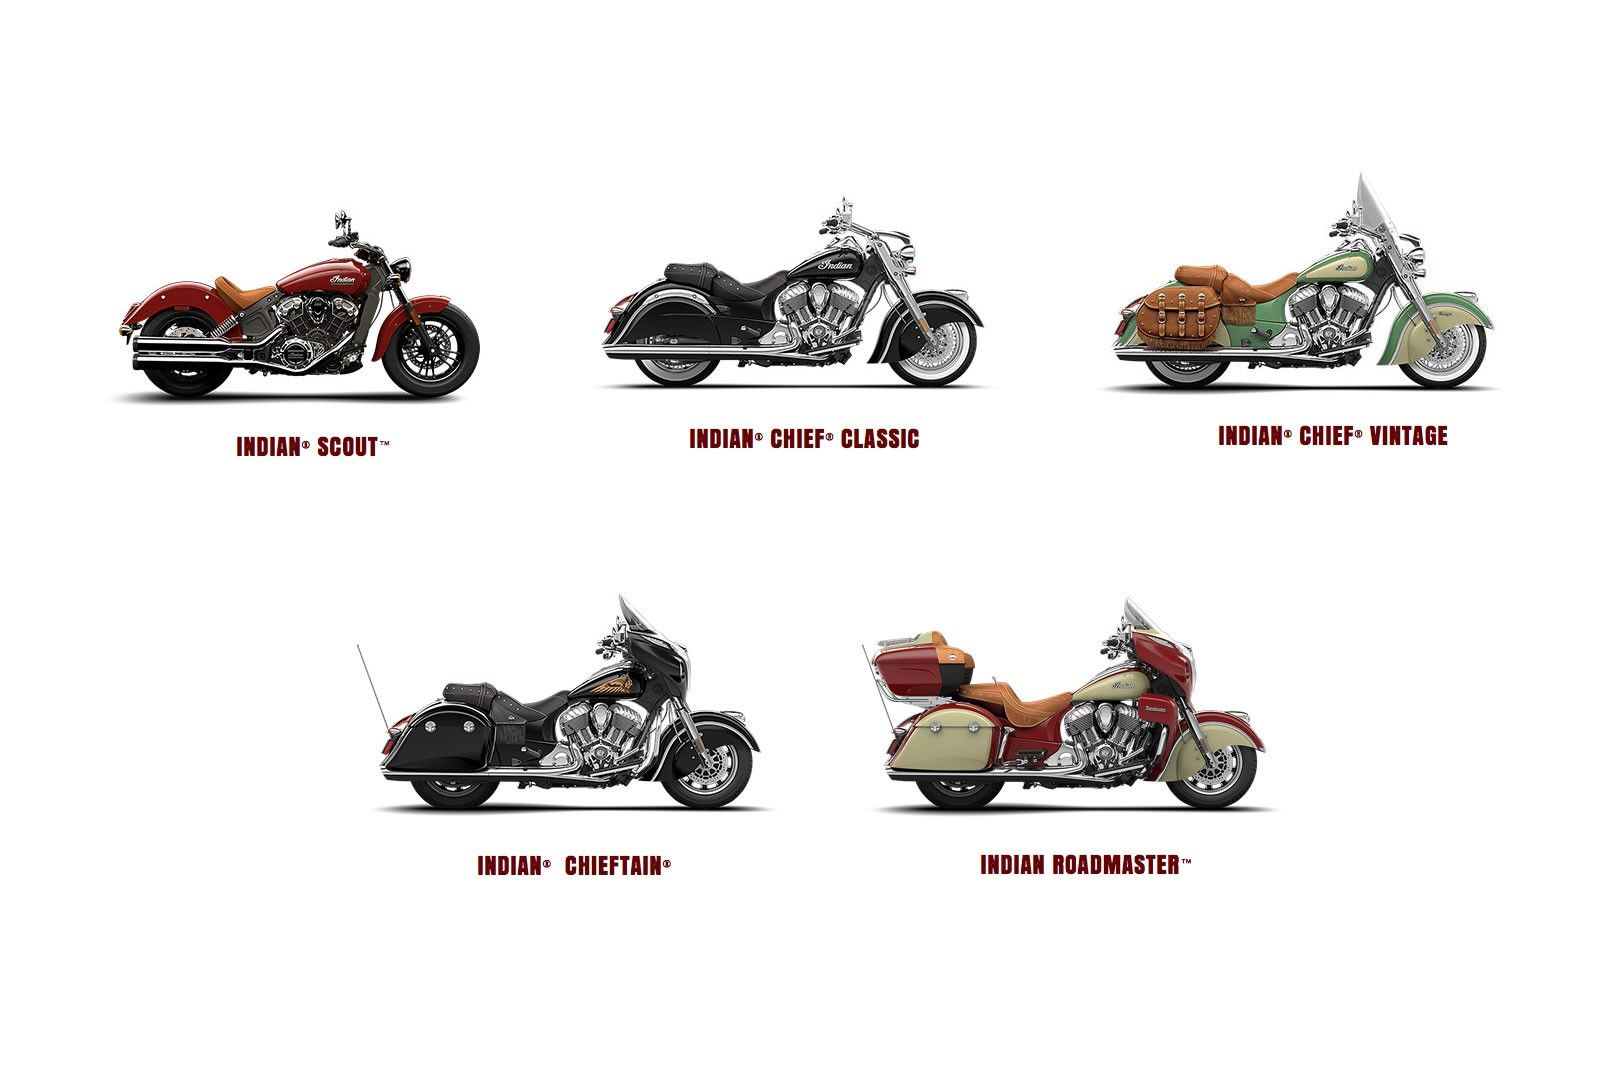 Indian Motorcycle Announces Their 2015 Model Lineup Jpg 1600 1067 Indian Chief Classic Indian Motorcycle Indian Scout